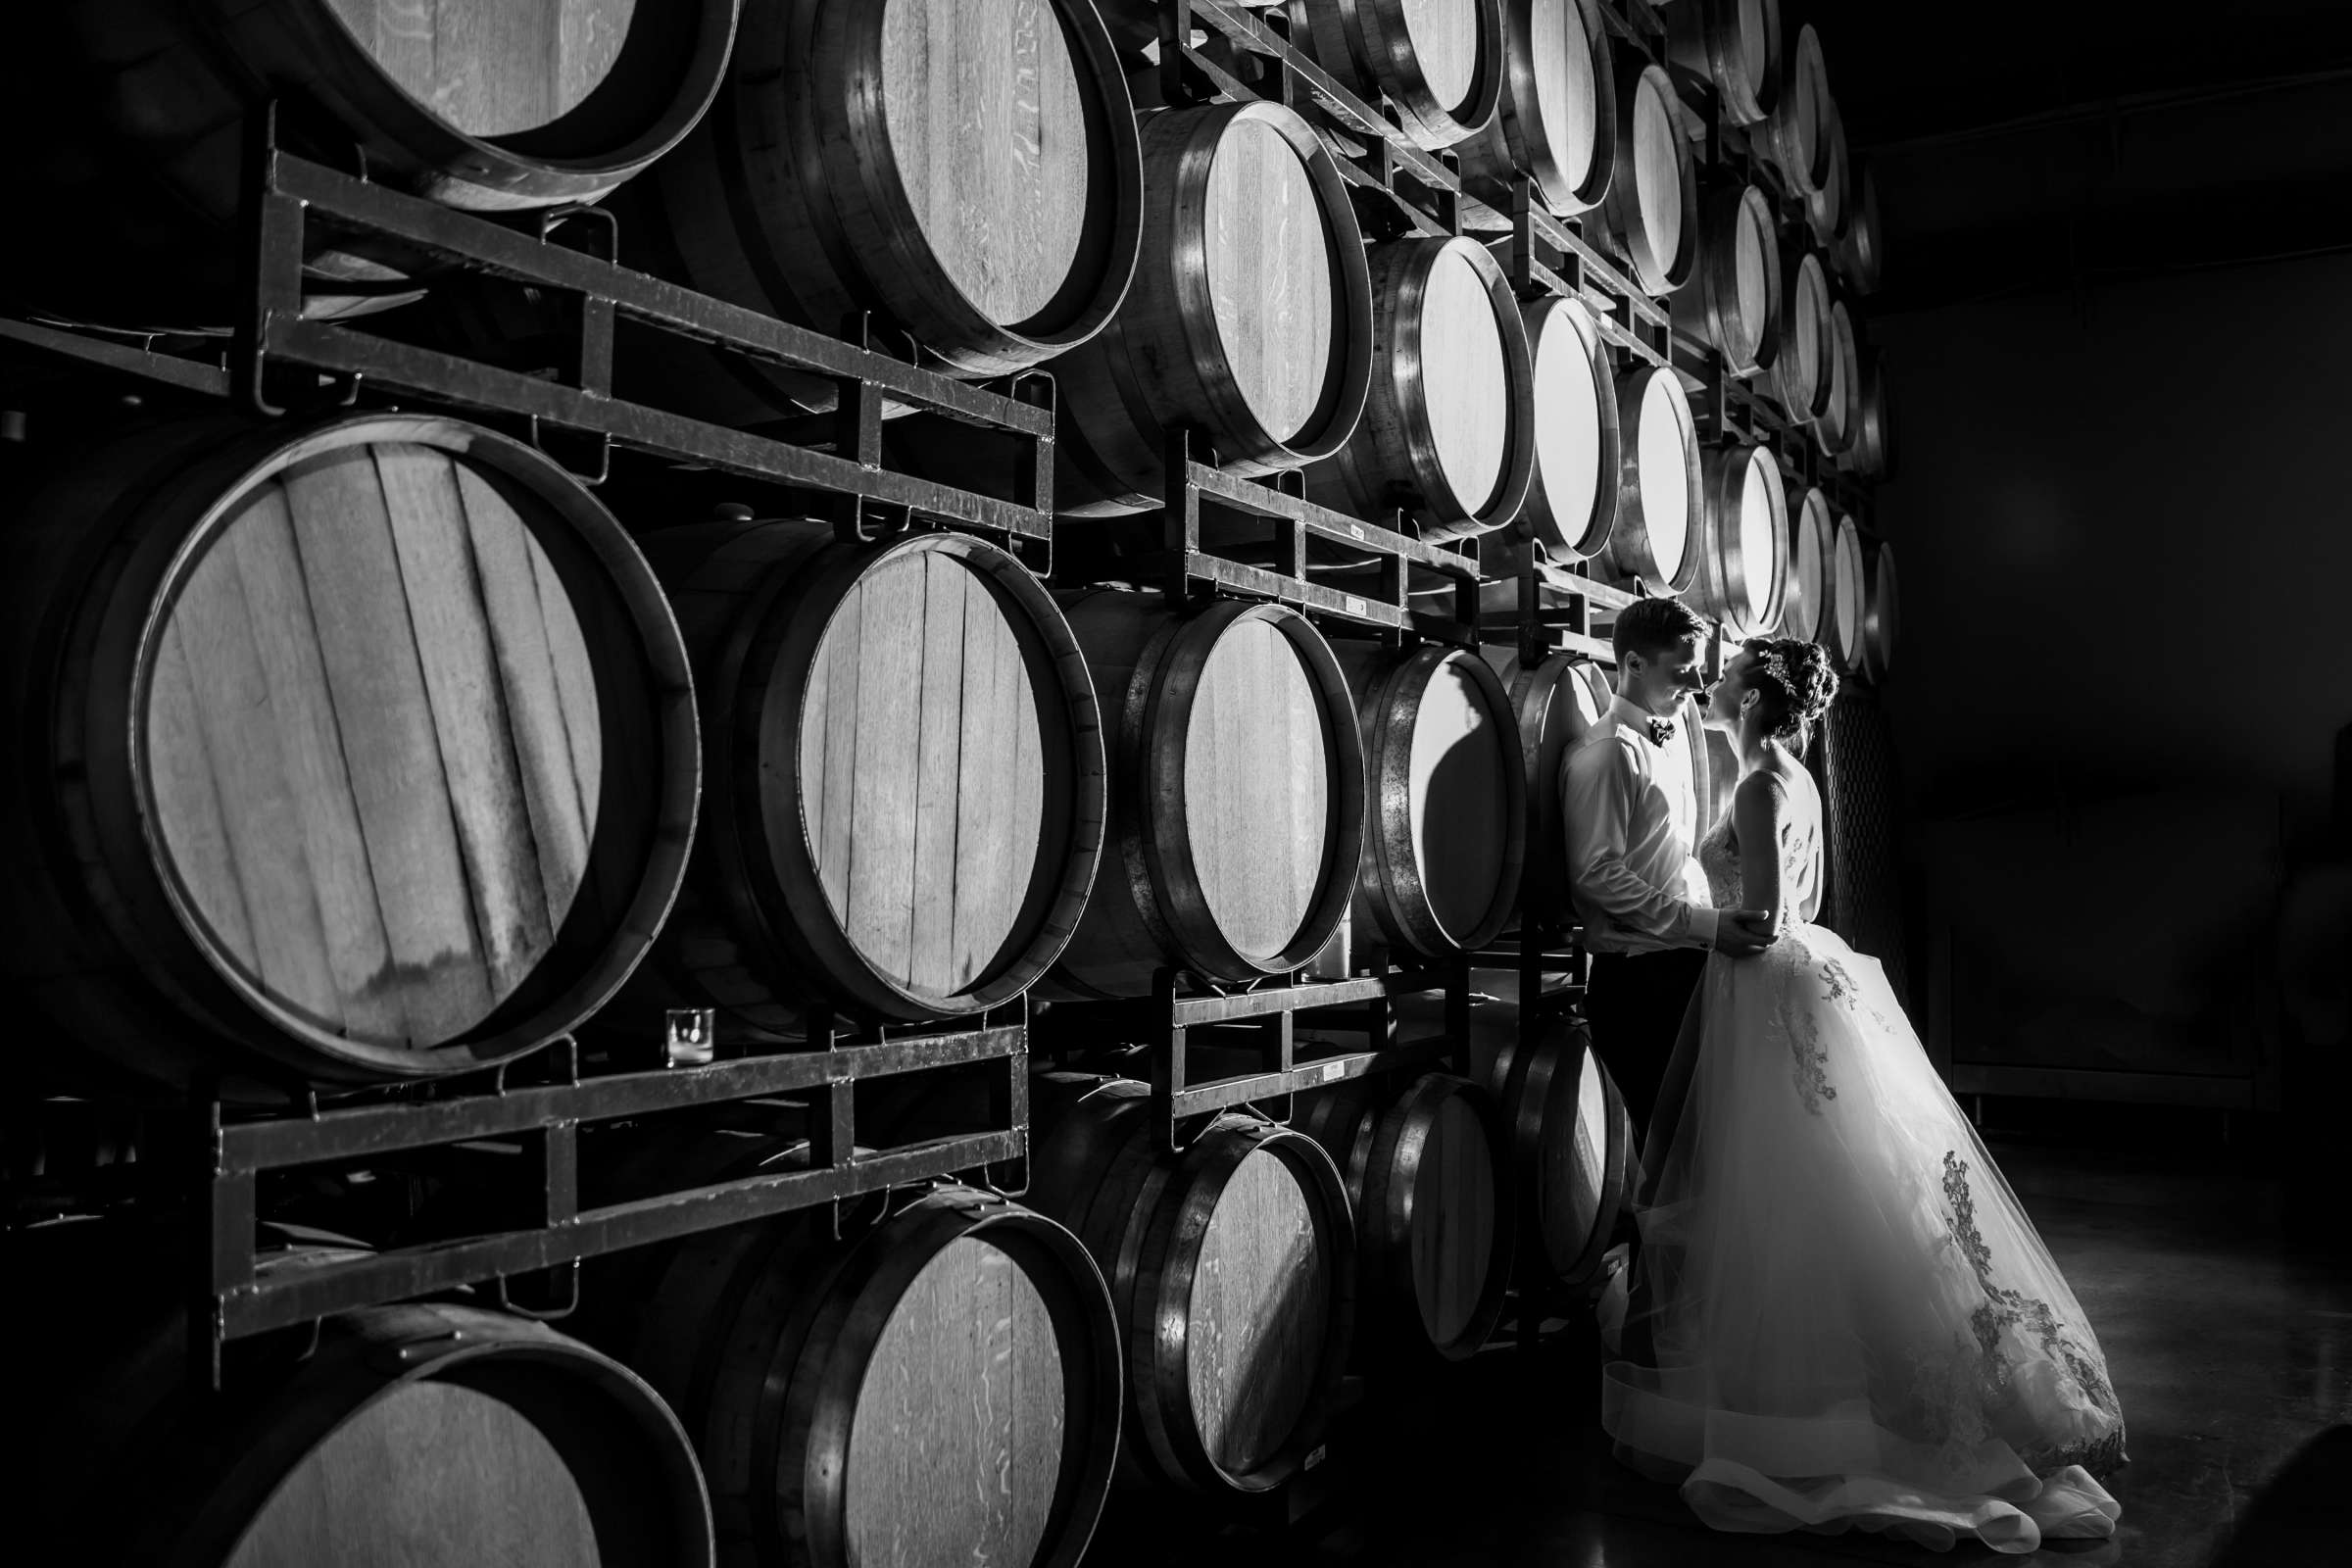 Callaway Vineyards & Winery Wedding, Natalia and Mike Wedding Photo #6 by True Photography